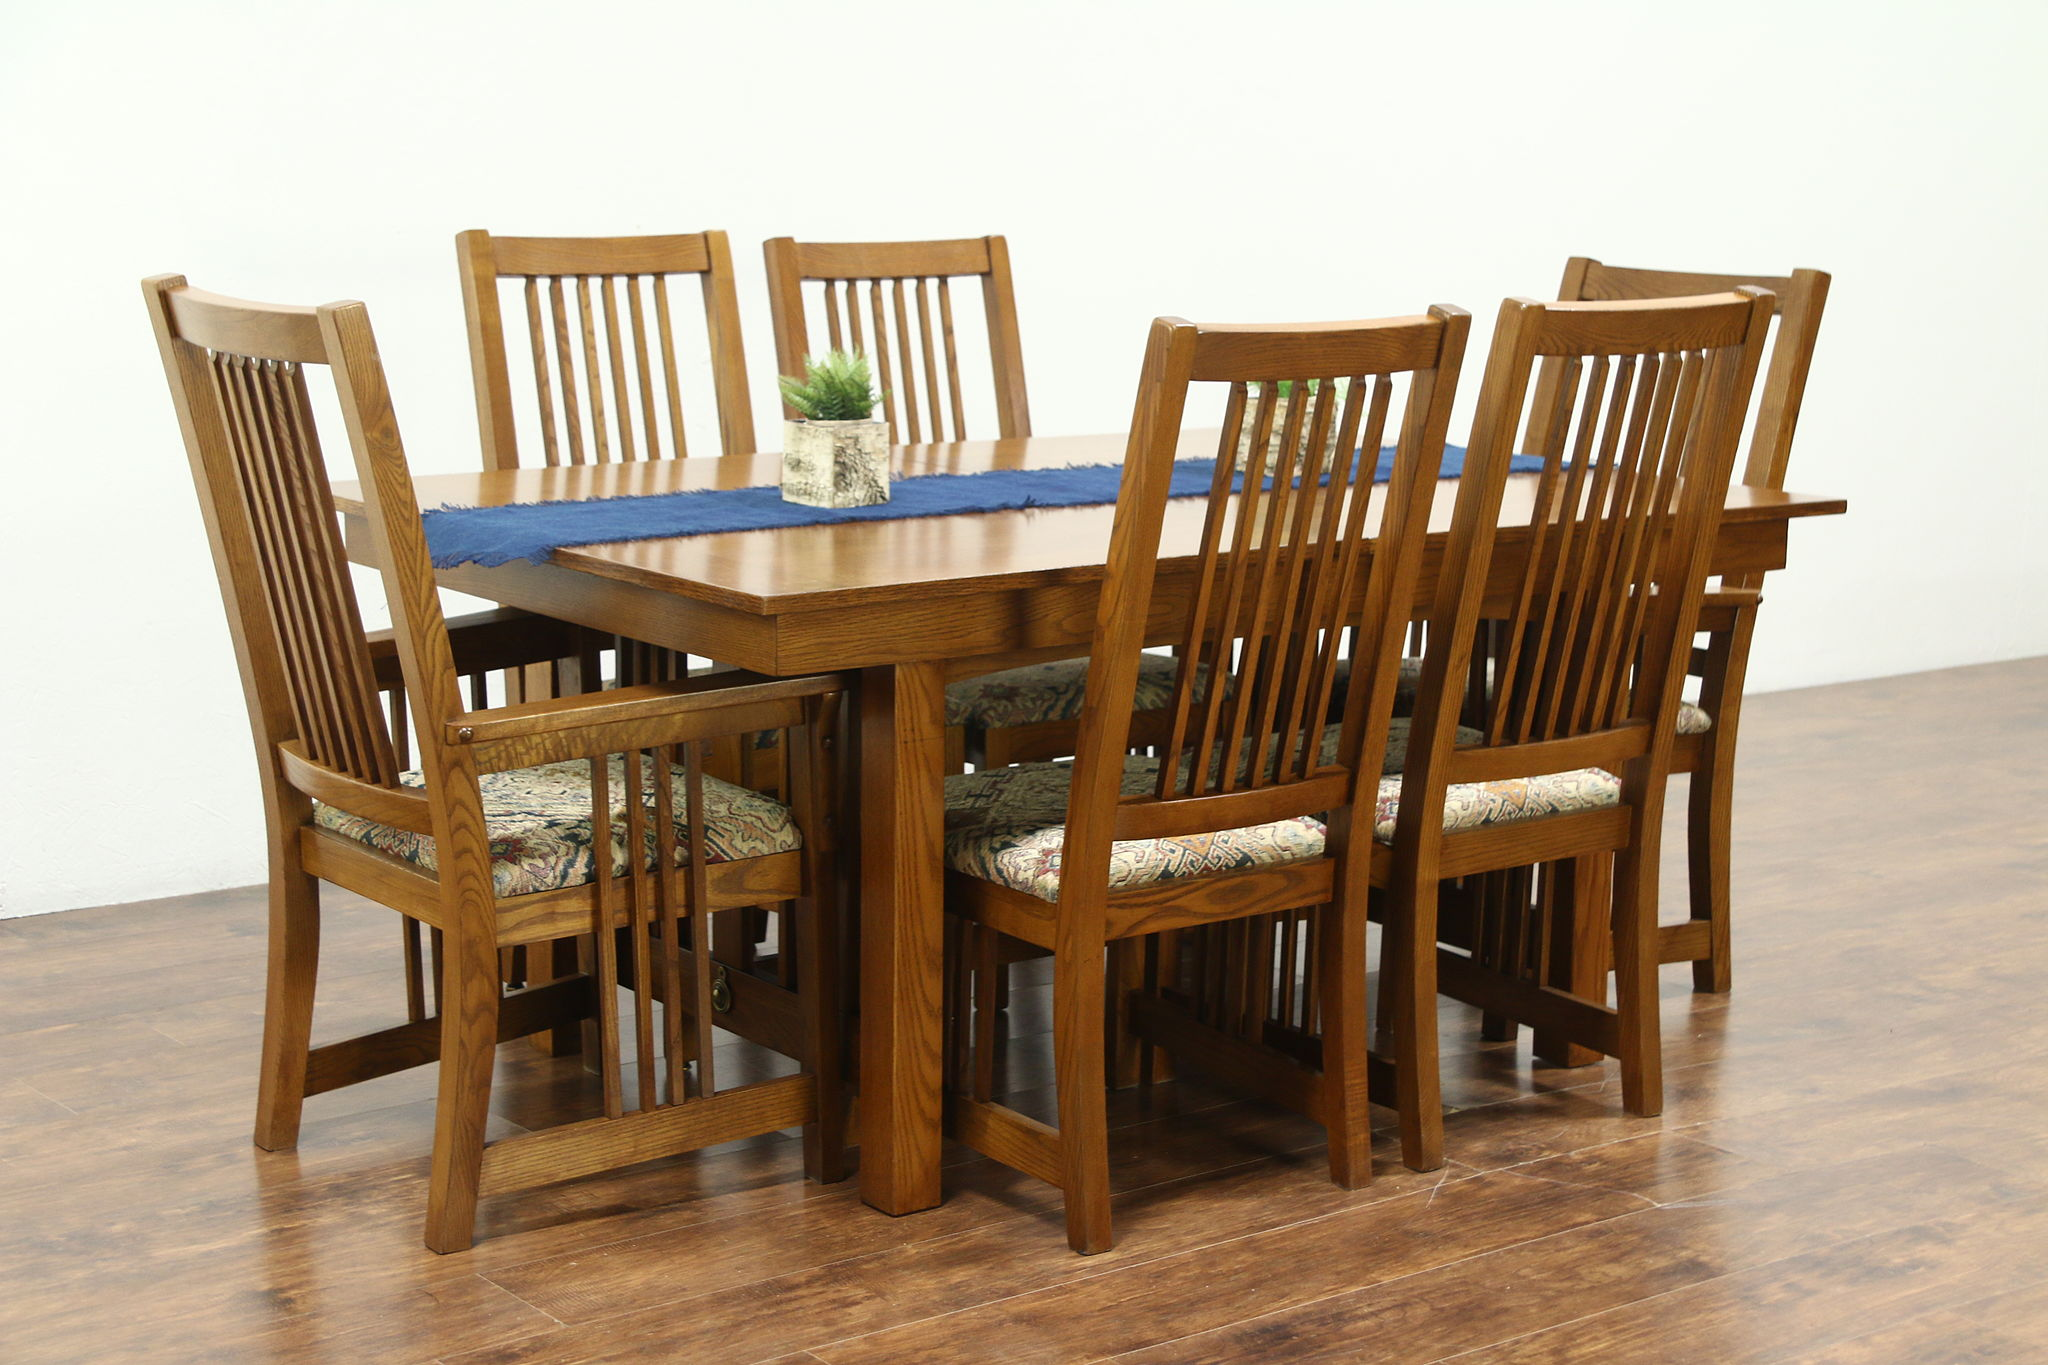 oak dining set 6 chairs revolving chair images sold prairie or craftsman vintage table 2 leaves harp gallery